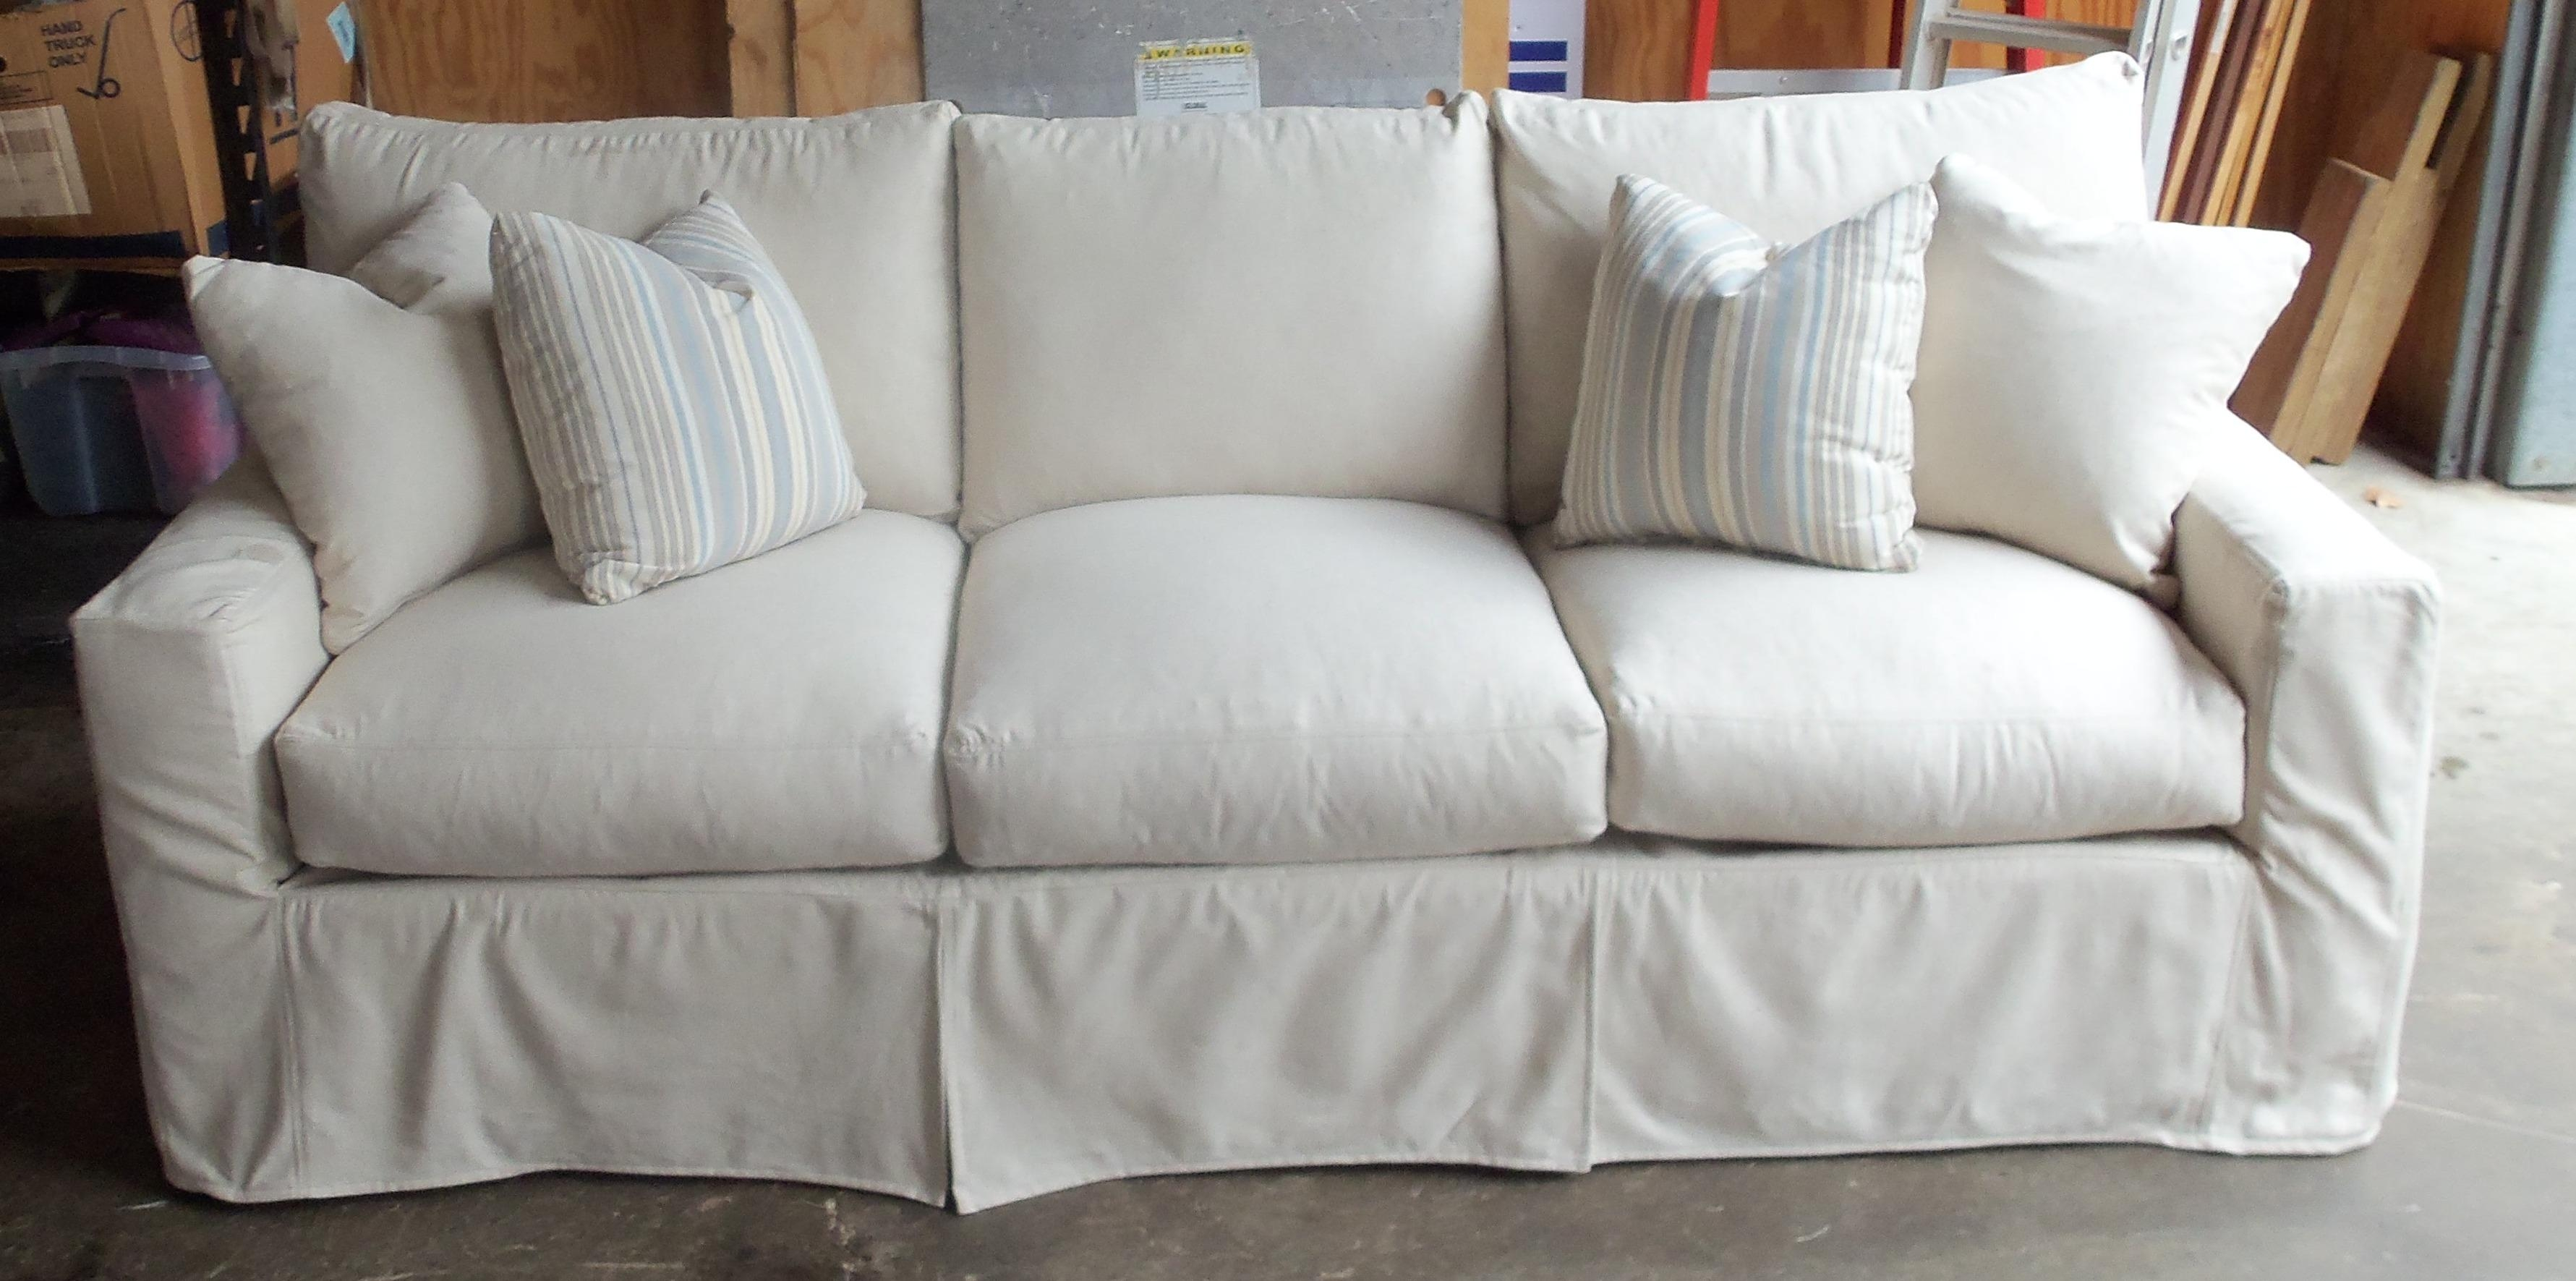 Sofas Center : 7860 Sofa Slipcover Sectional Sofa Phenomenal For Rowe Slipcovers (Image 18 of 20)